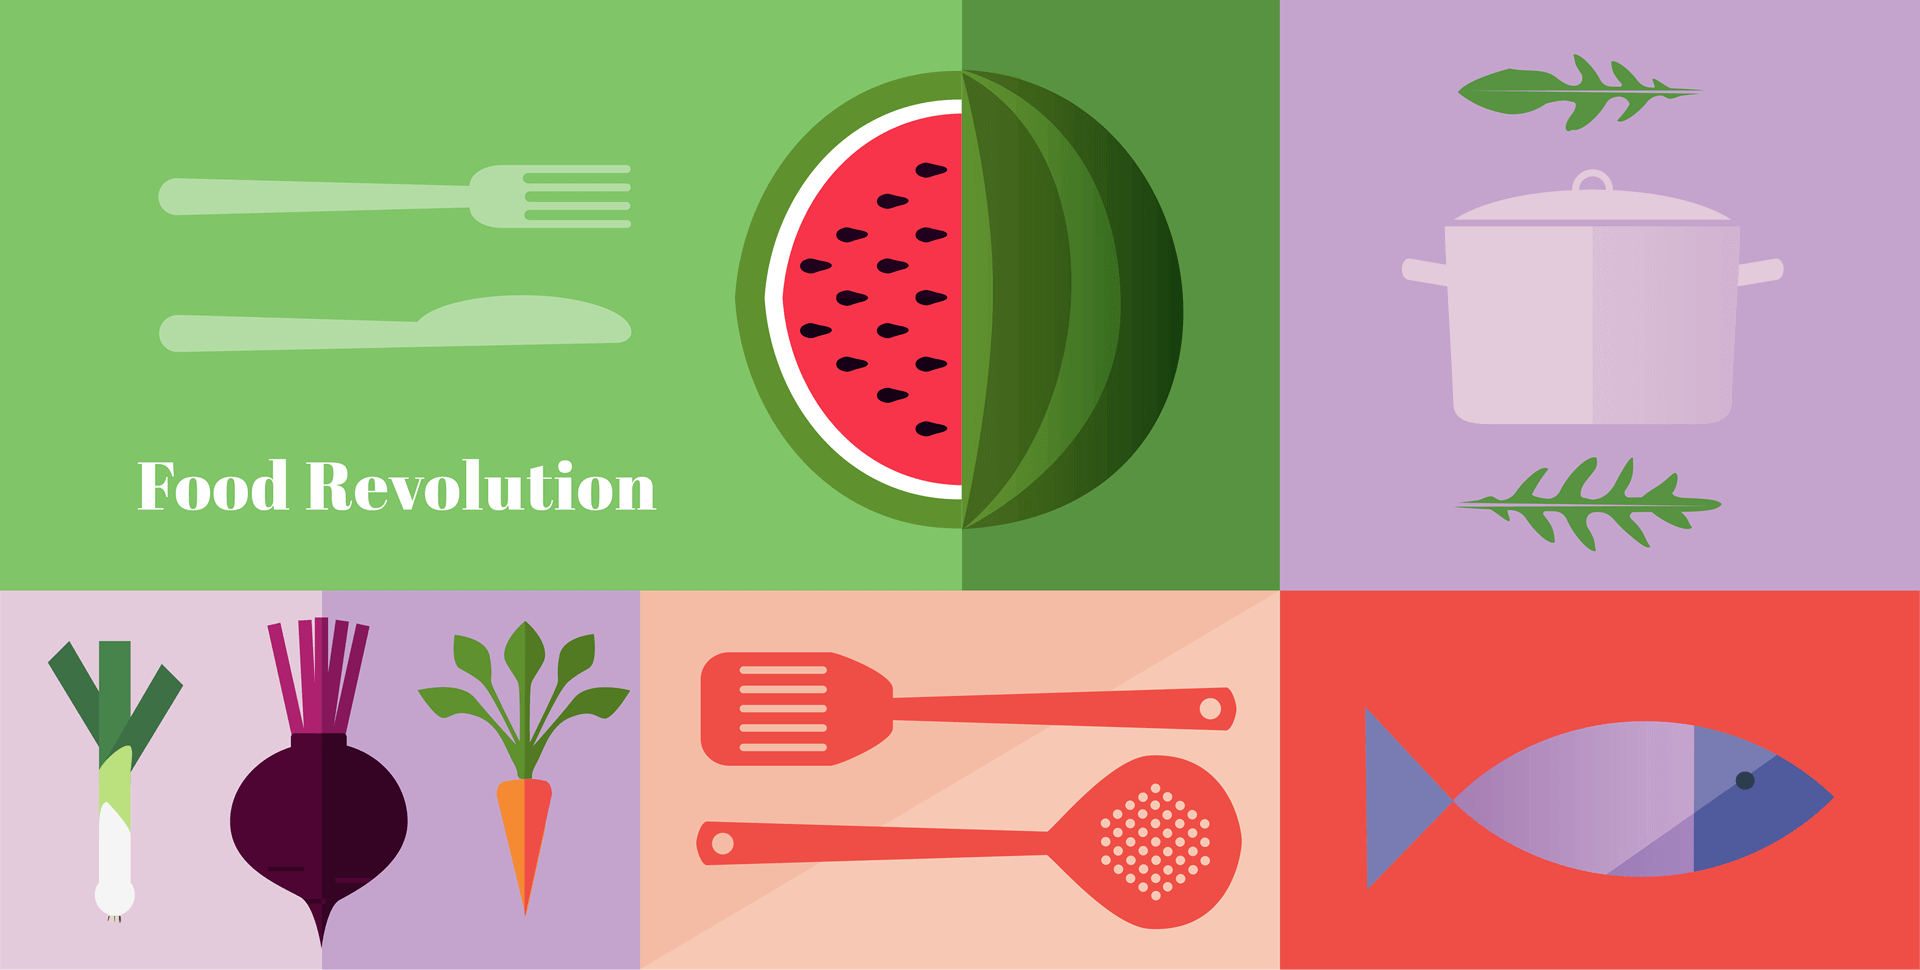 Food revolution graphic panels